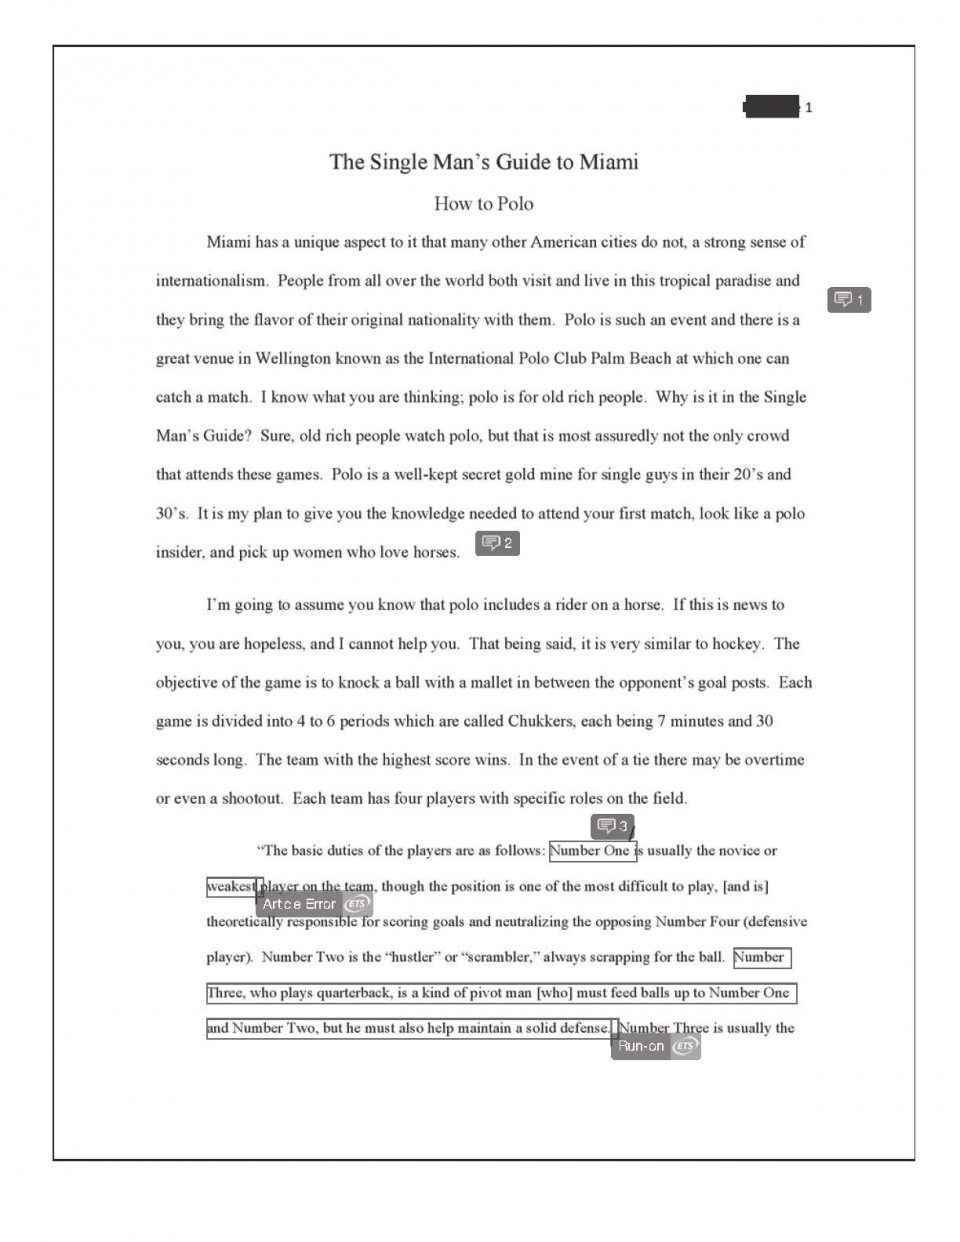 007 Informative Essay Kinds Of Writing Types Essays The Center In Hindi Final How To Polo Redacted P Pdf Task Slideshare Ppt Withs Wikipedia Dreaded Examples 6th Grade Topics 960